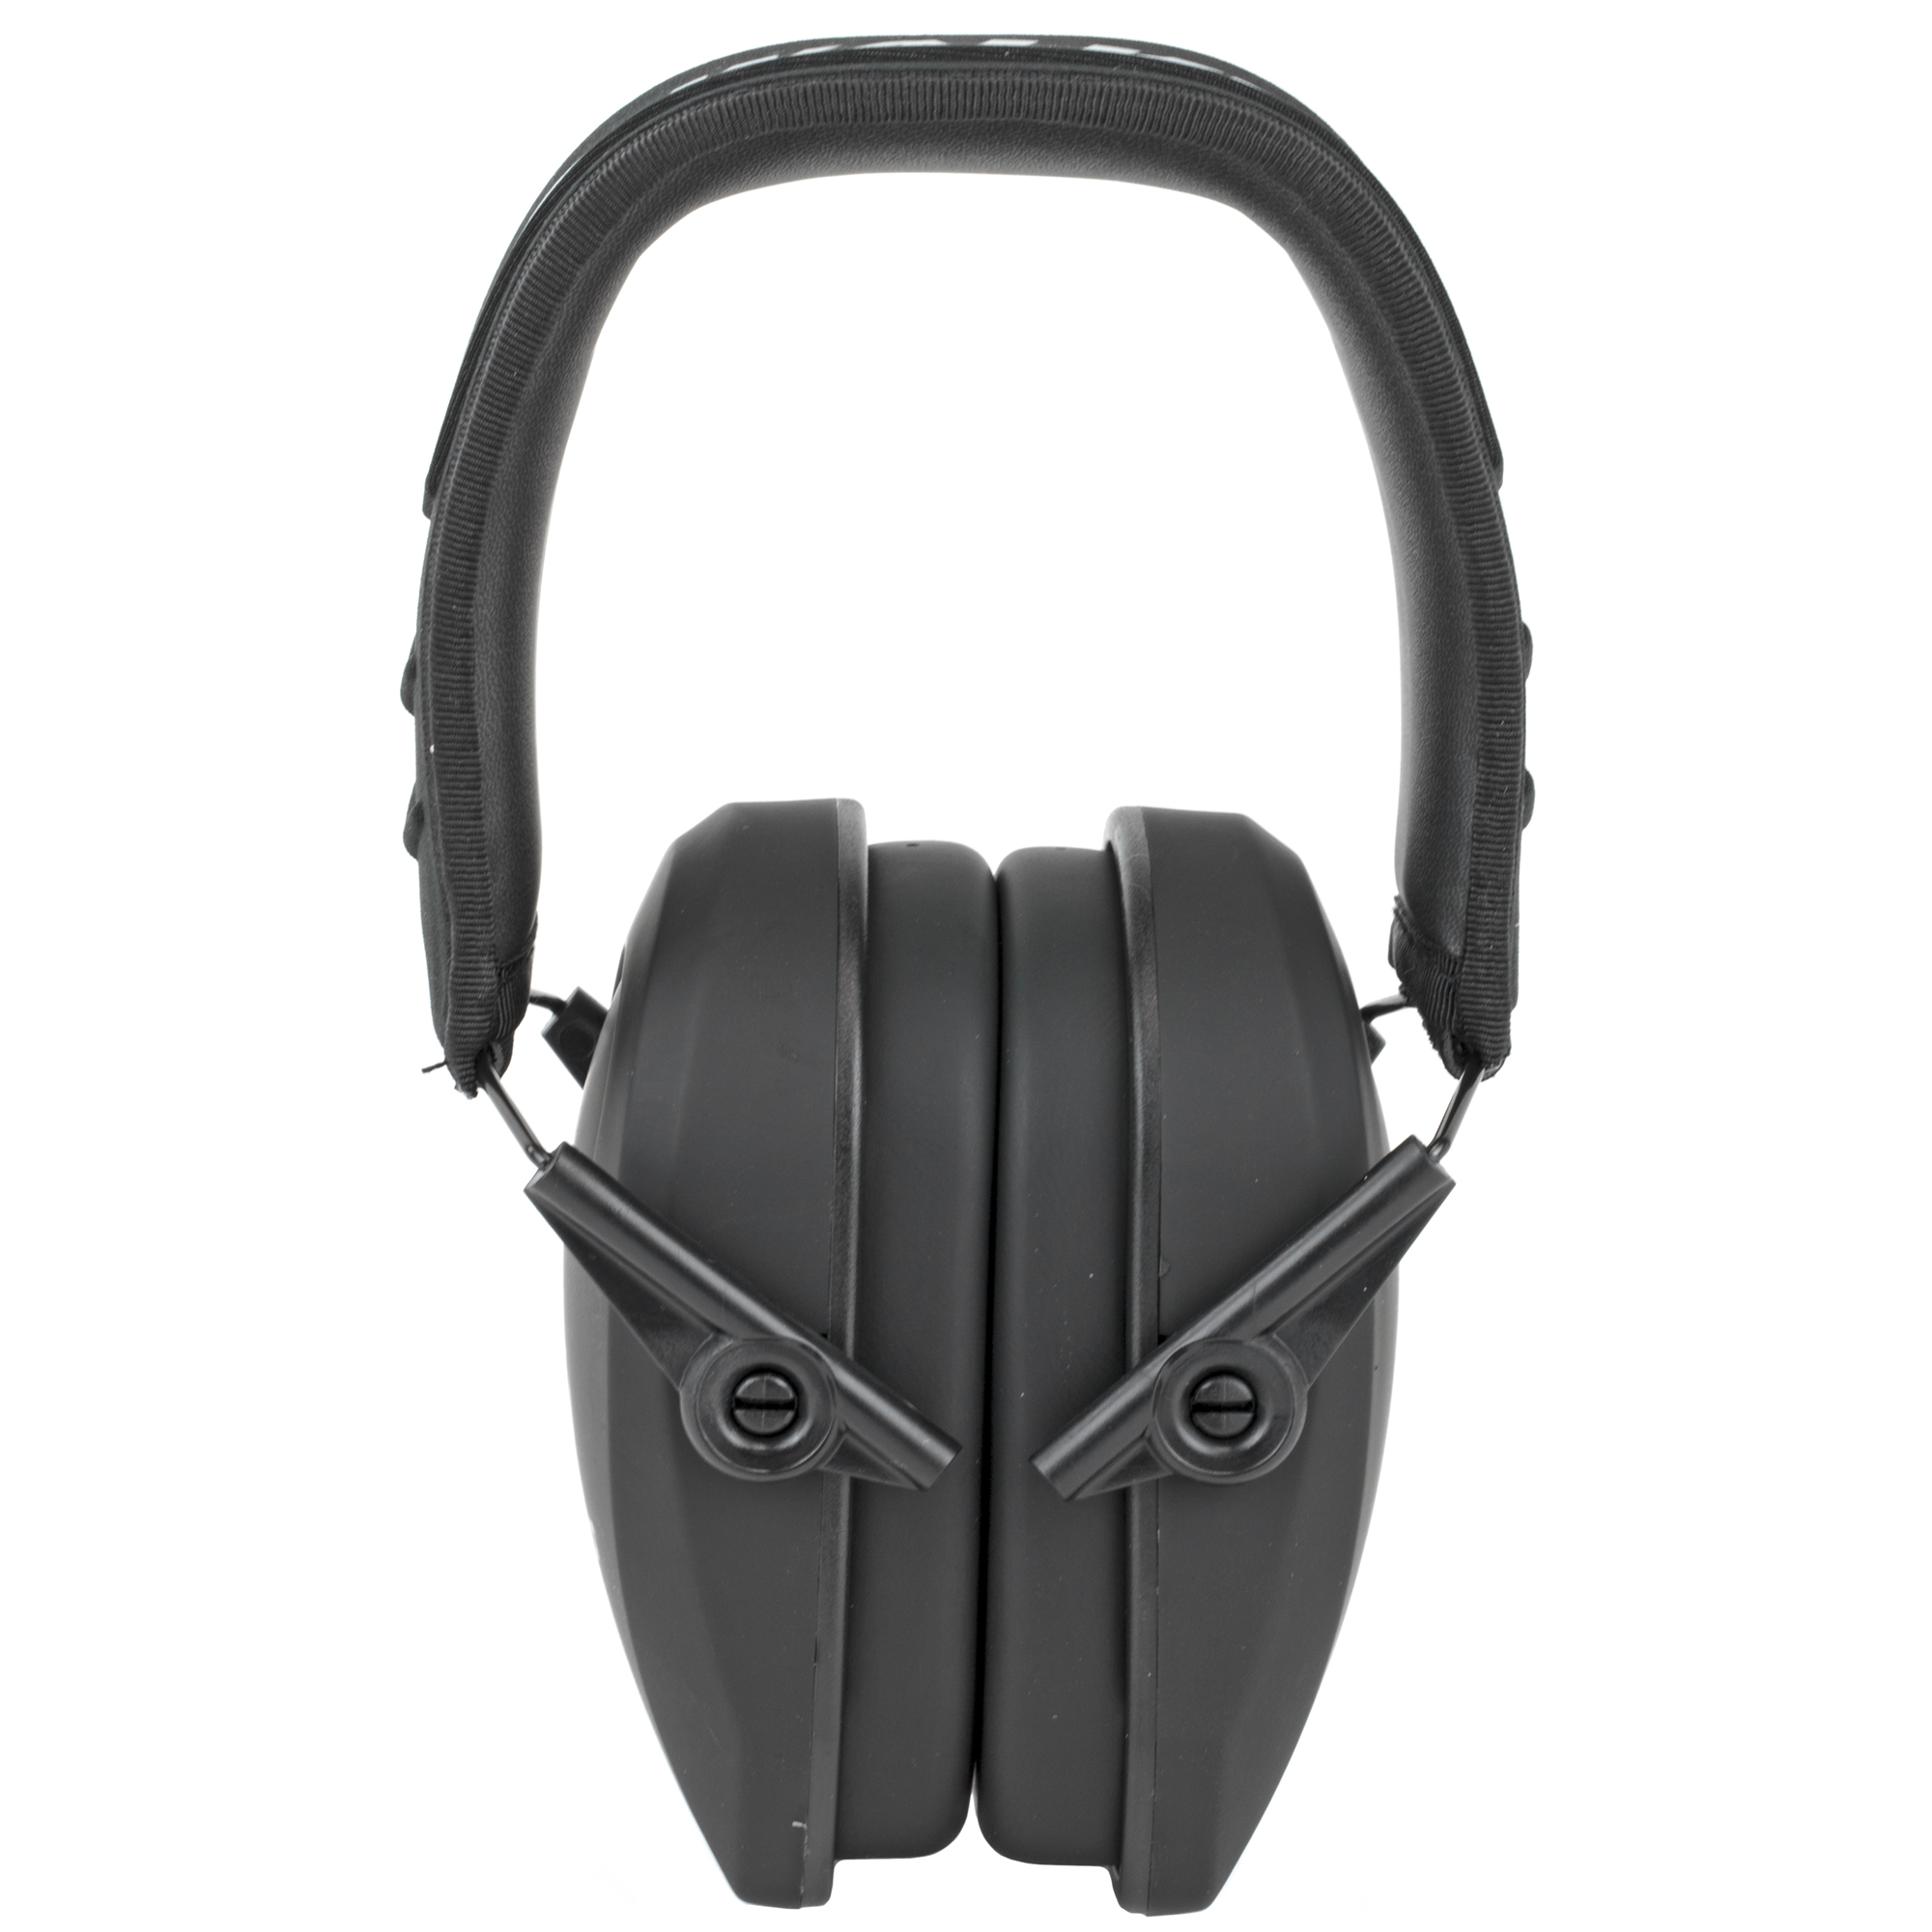 Walker's Game Ear Razor Slim Series Passive Adult Folding Earmuffs Matte Black Finish